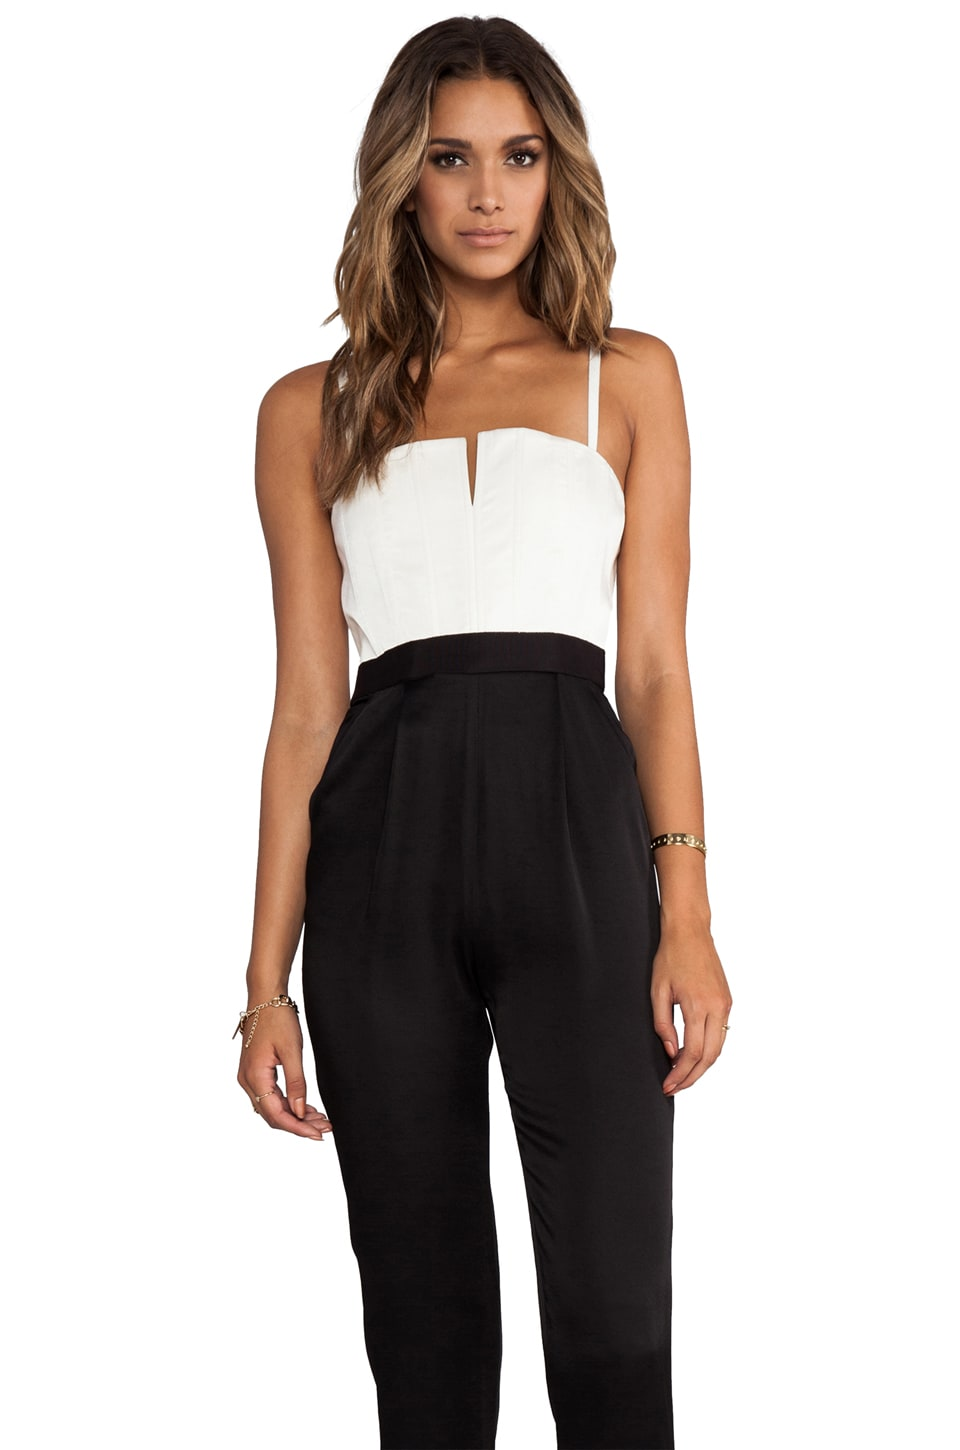 Alice + Olivia Arrow Tank Pleat Pant Jumpsuit in White/Black